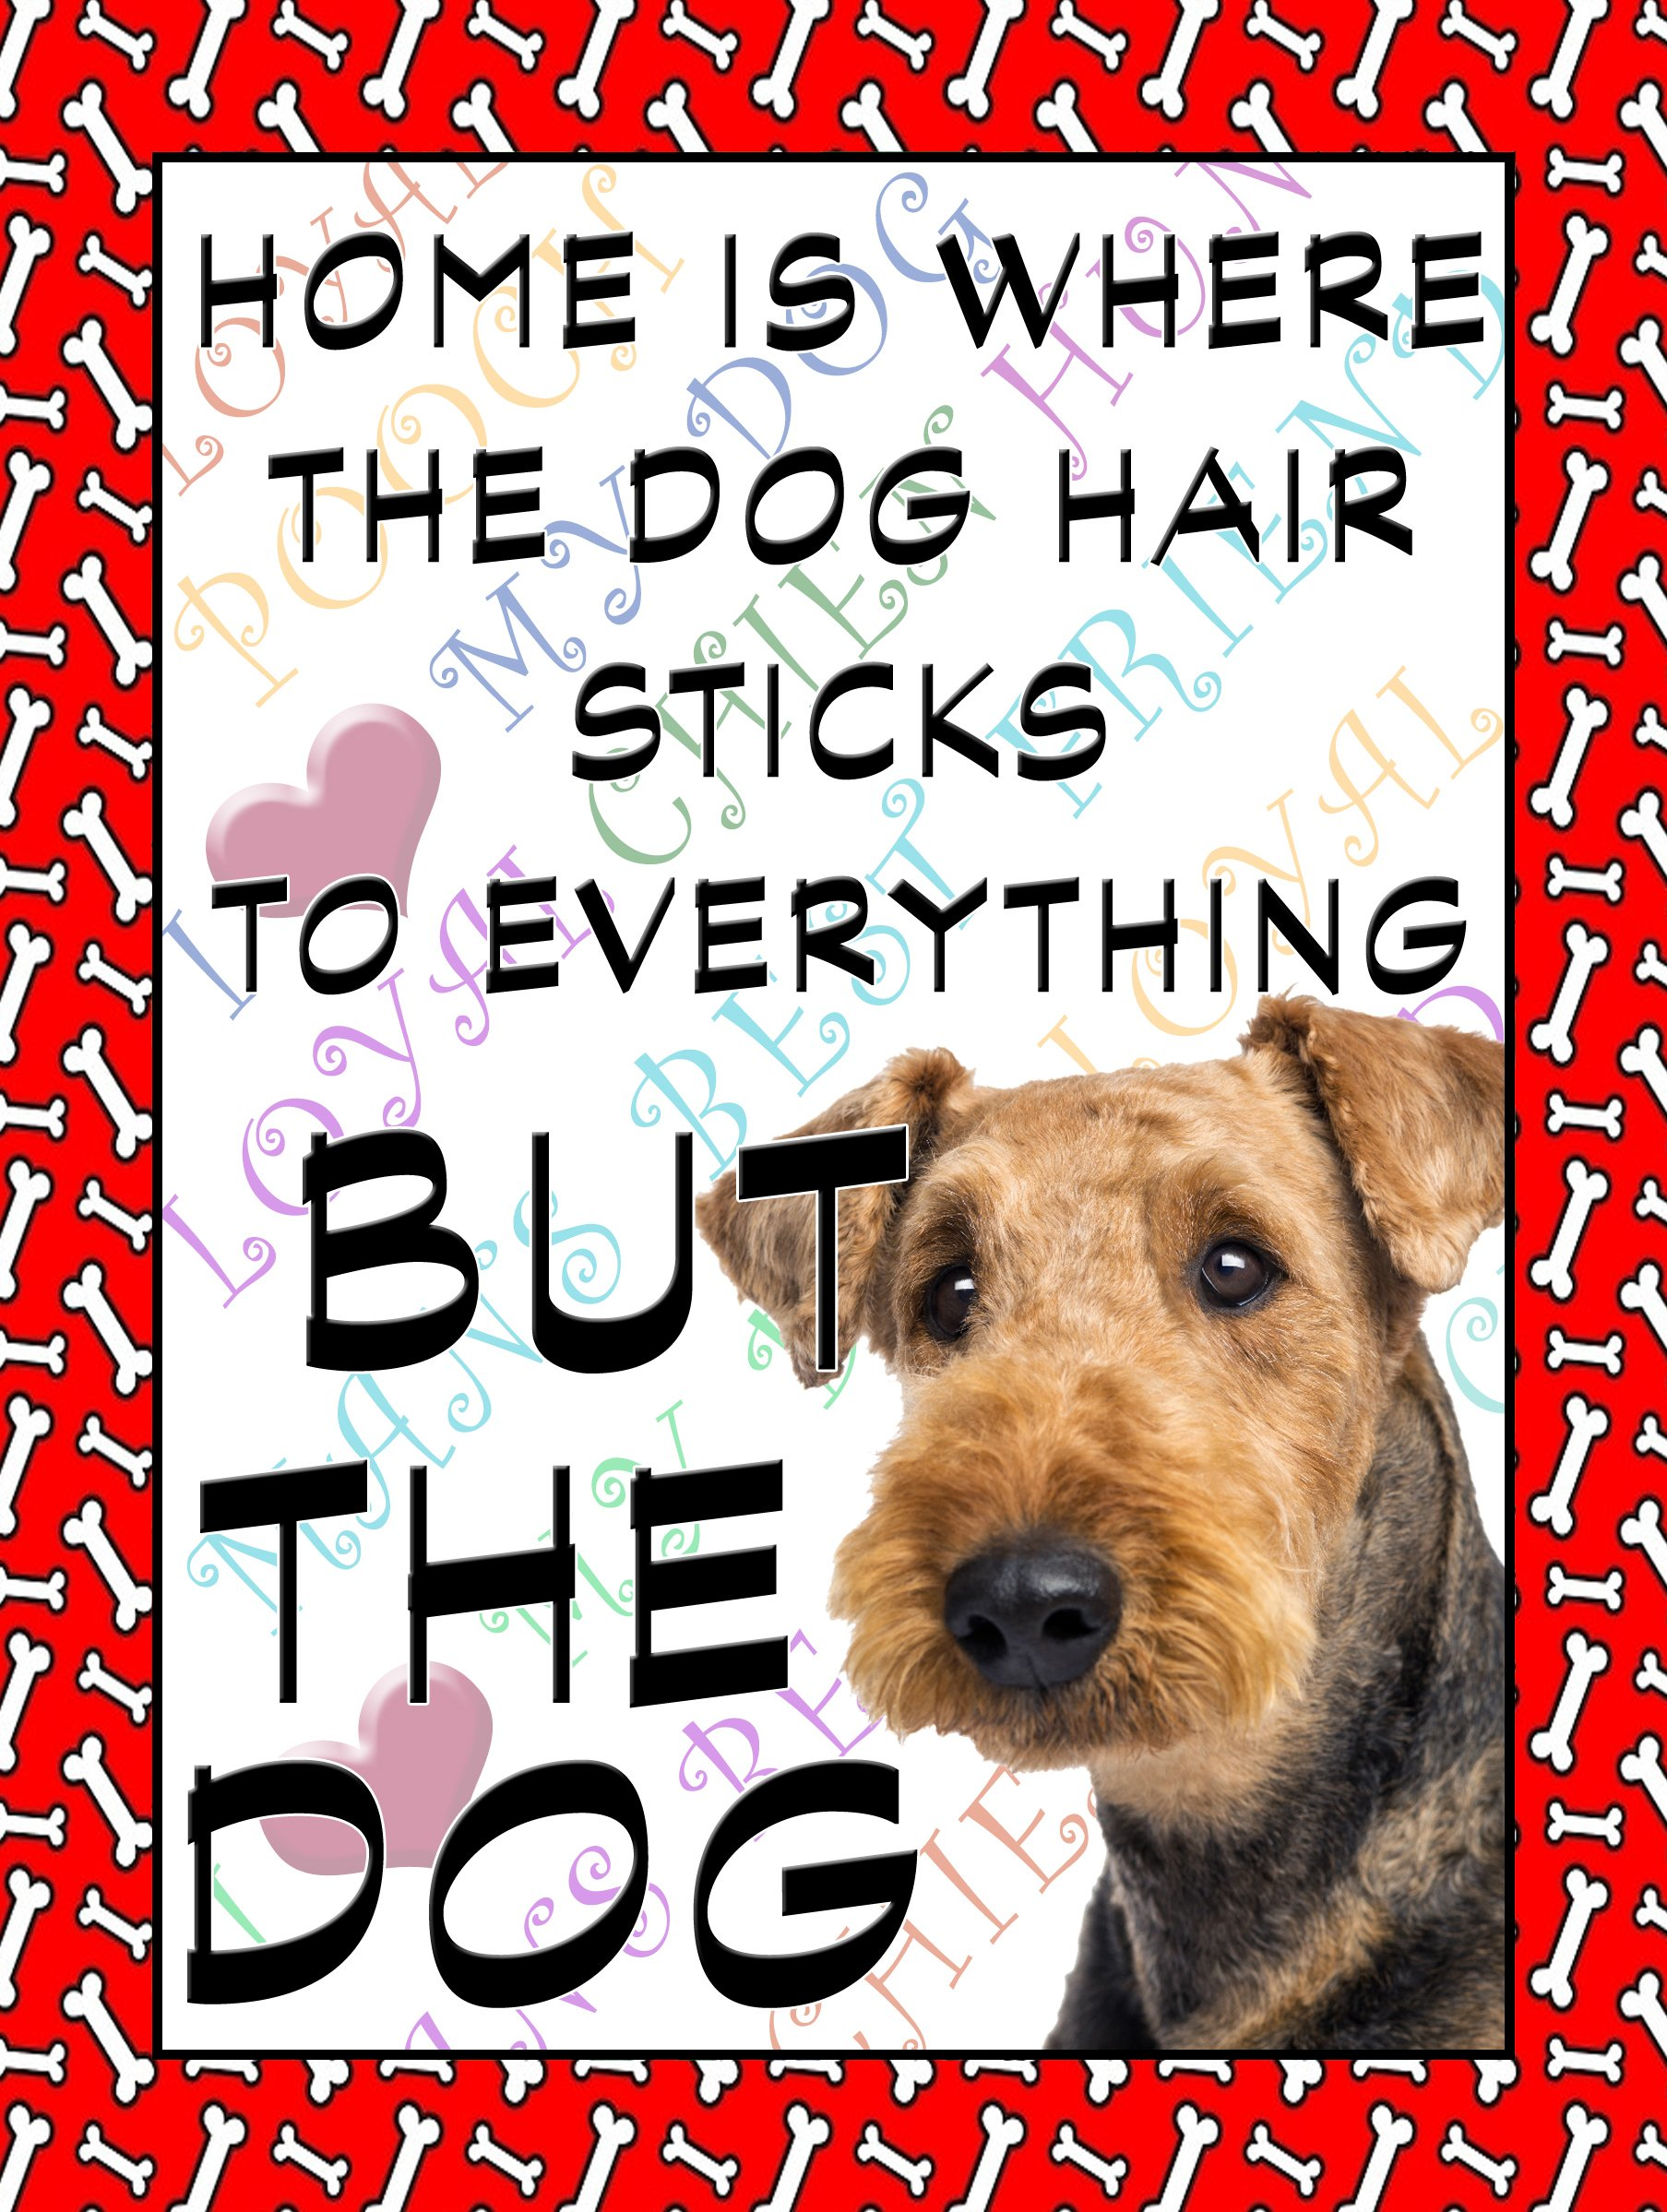 """Airdale Terrier Dog Fridge Magnet 100mm x 75mm """"HOME IS WHERE THE DOG HAIR STICKS TO EVERYTHING BUT THE DOG"""" NOVELTY GIFT"""